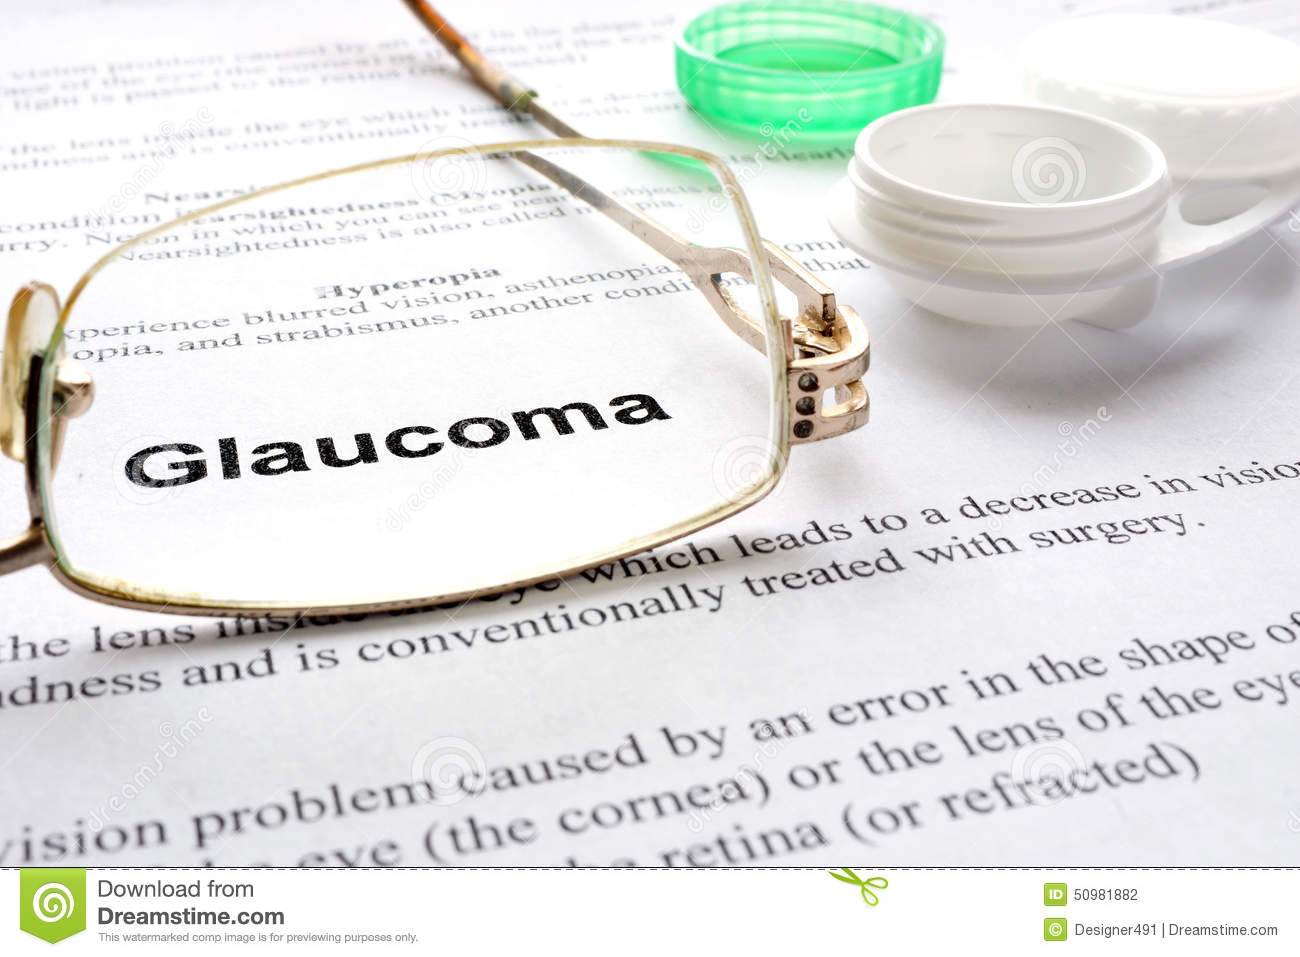 thesis on glaucoma The objectives of the present thesis were to determine the lifetime risk and  duration of glaucoma blindness in a large retrospective study on patients with.